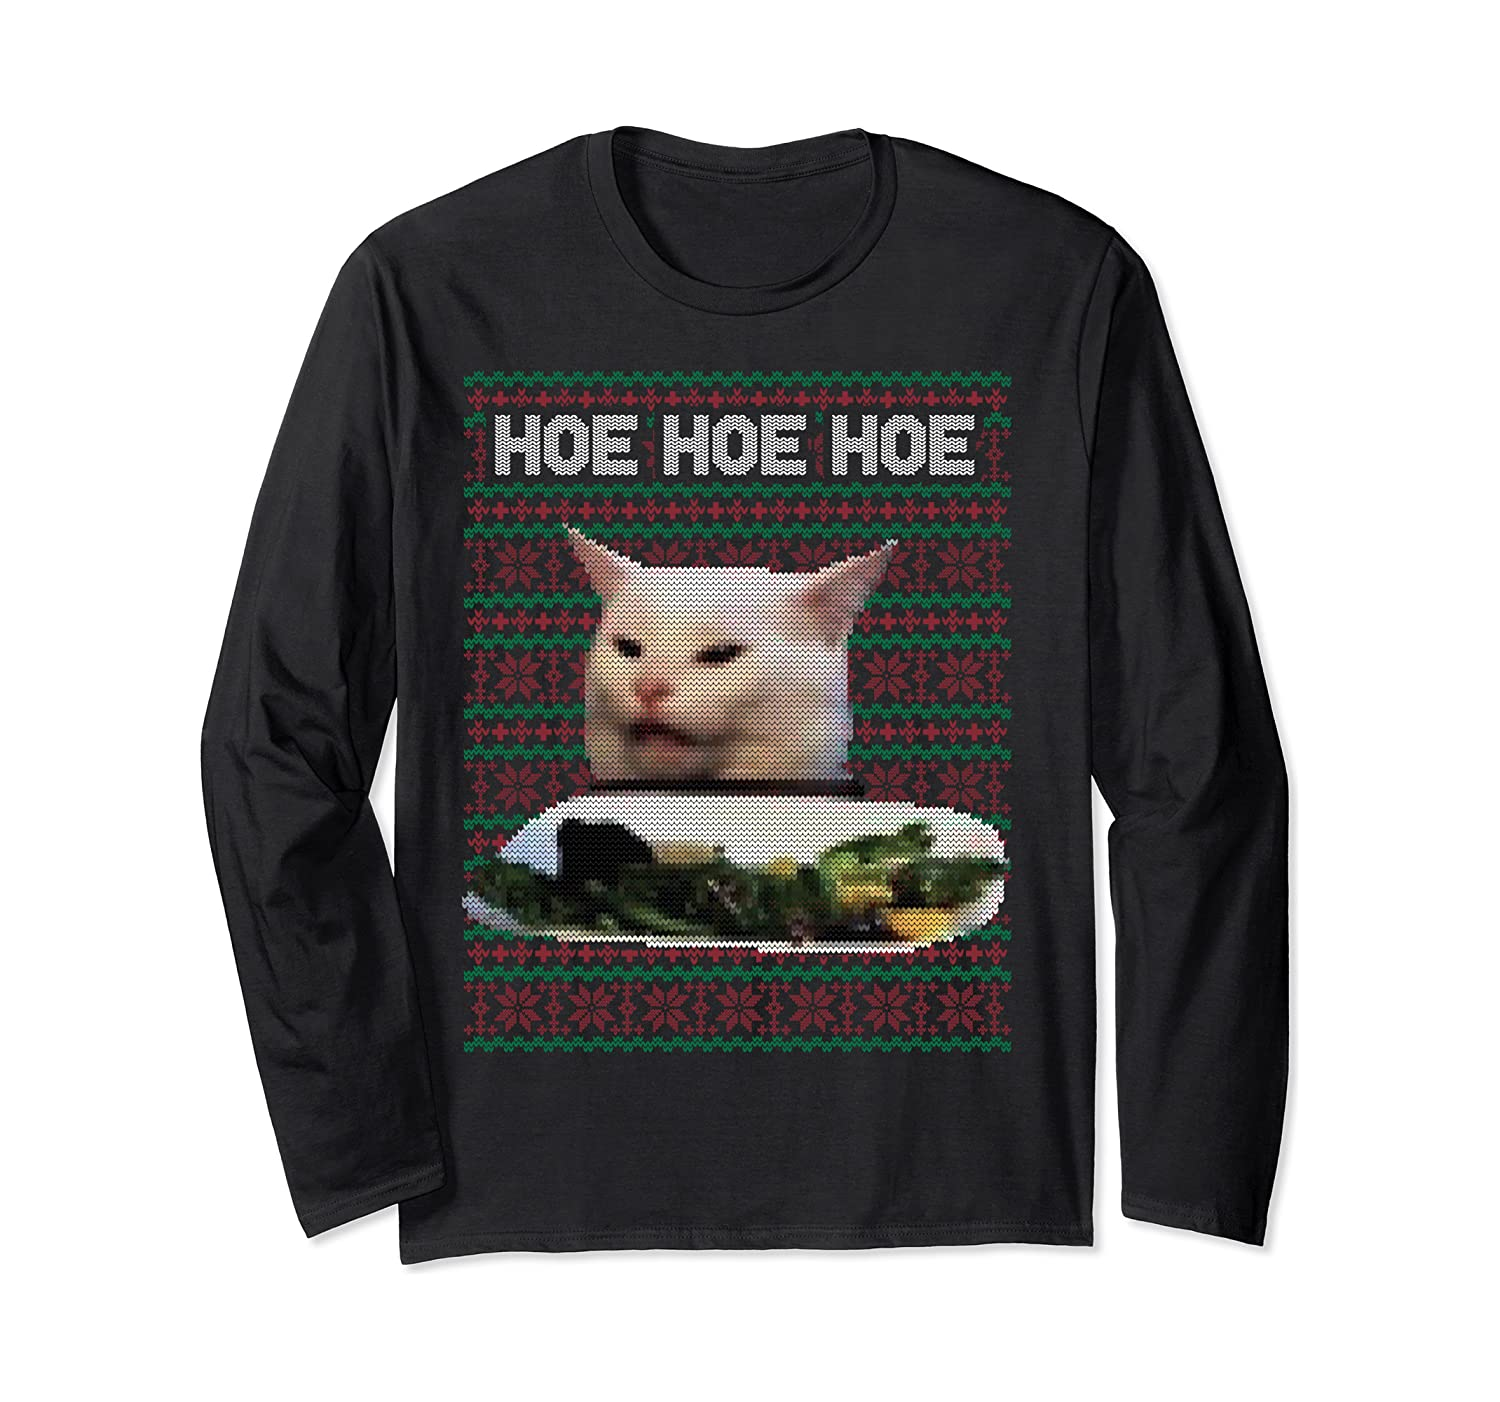 Hoe Hoe Hoe Woman Yelling At A Cat Ugly Christmas Sweater Long Sleeve T-shirt